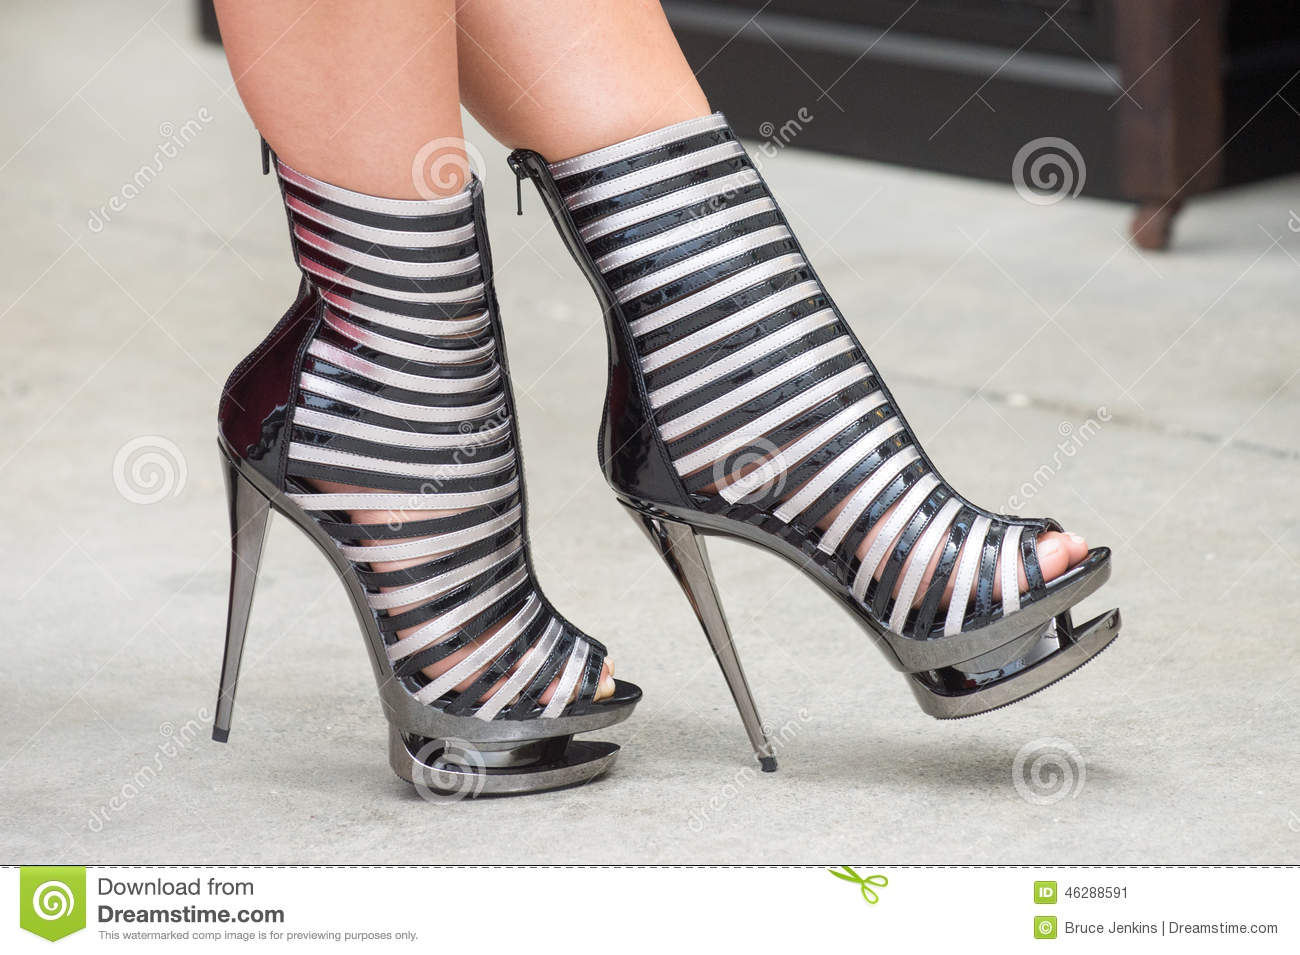 8e1dc3ce569 A model wears a pair of stiletto high heel shoes on concrete flooring